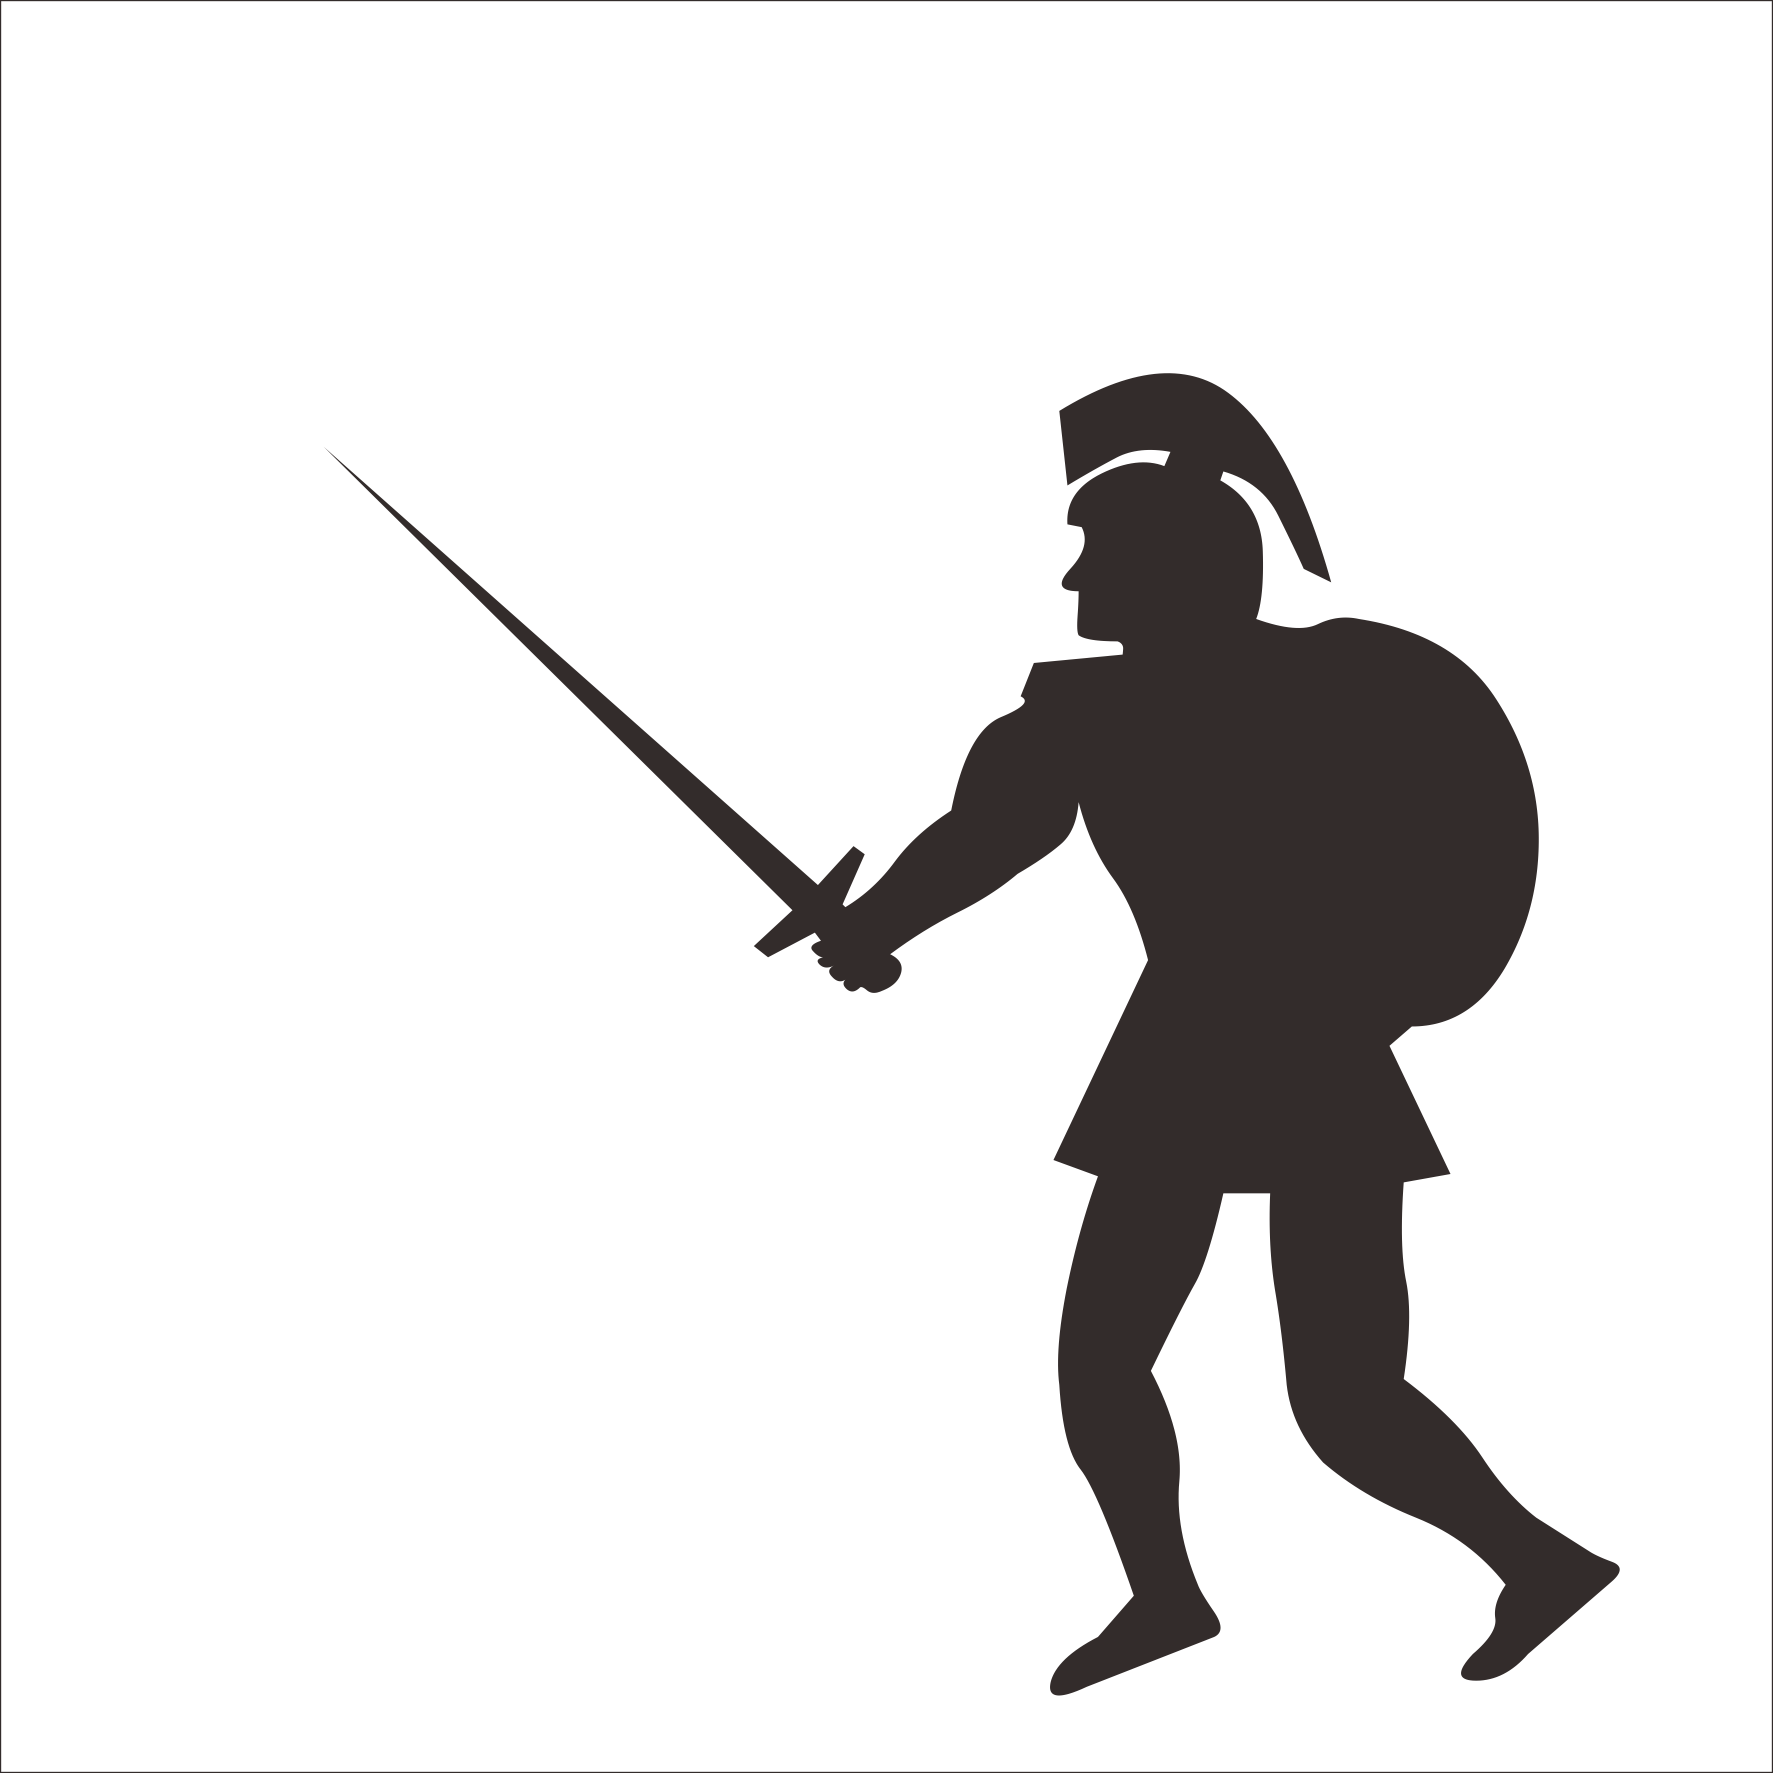 Soldiers clipart soldier canadian. Gladius sword roman army